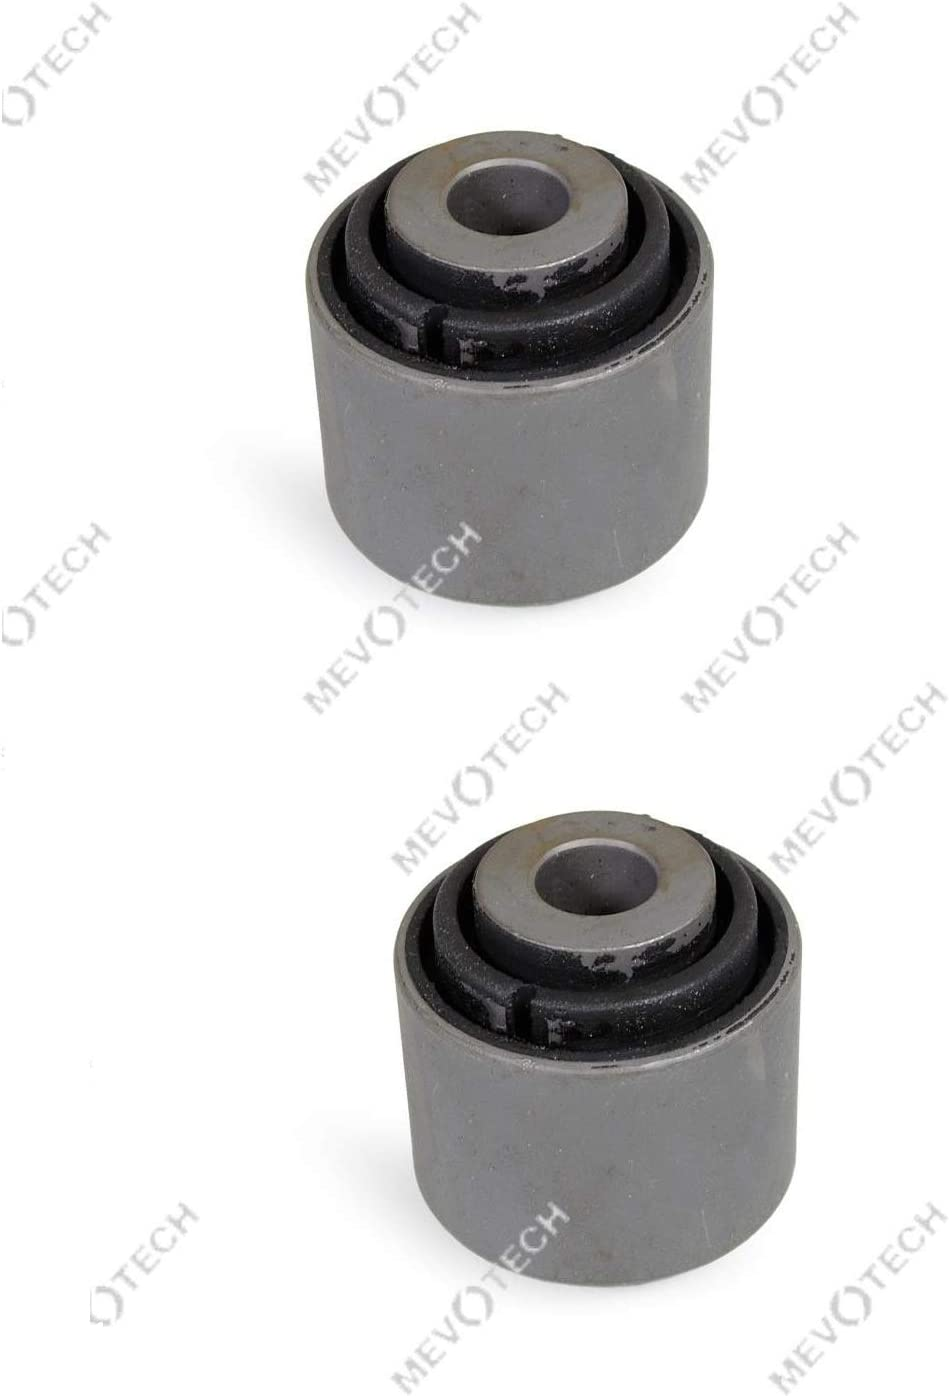 Pair Set 2 Rear Upper At Knuckle Control Arm Bushings Mevotech For Civic 02-05